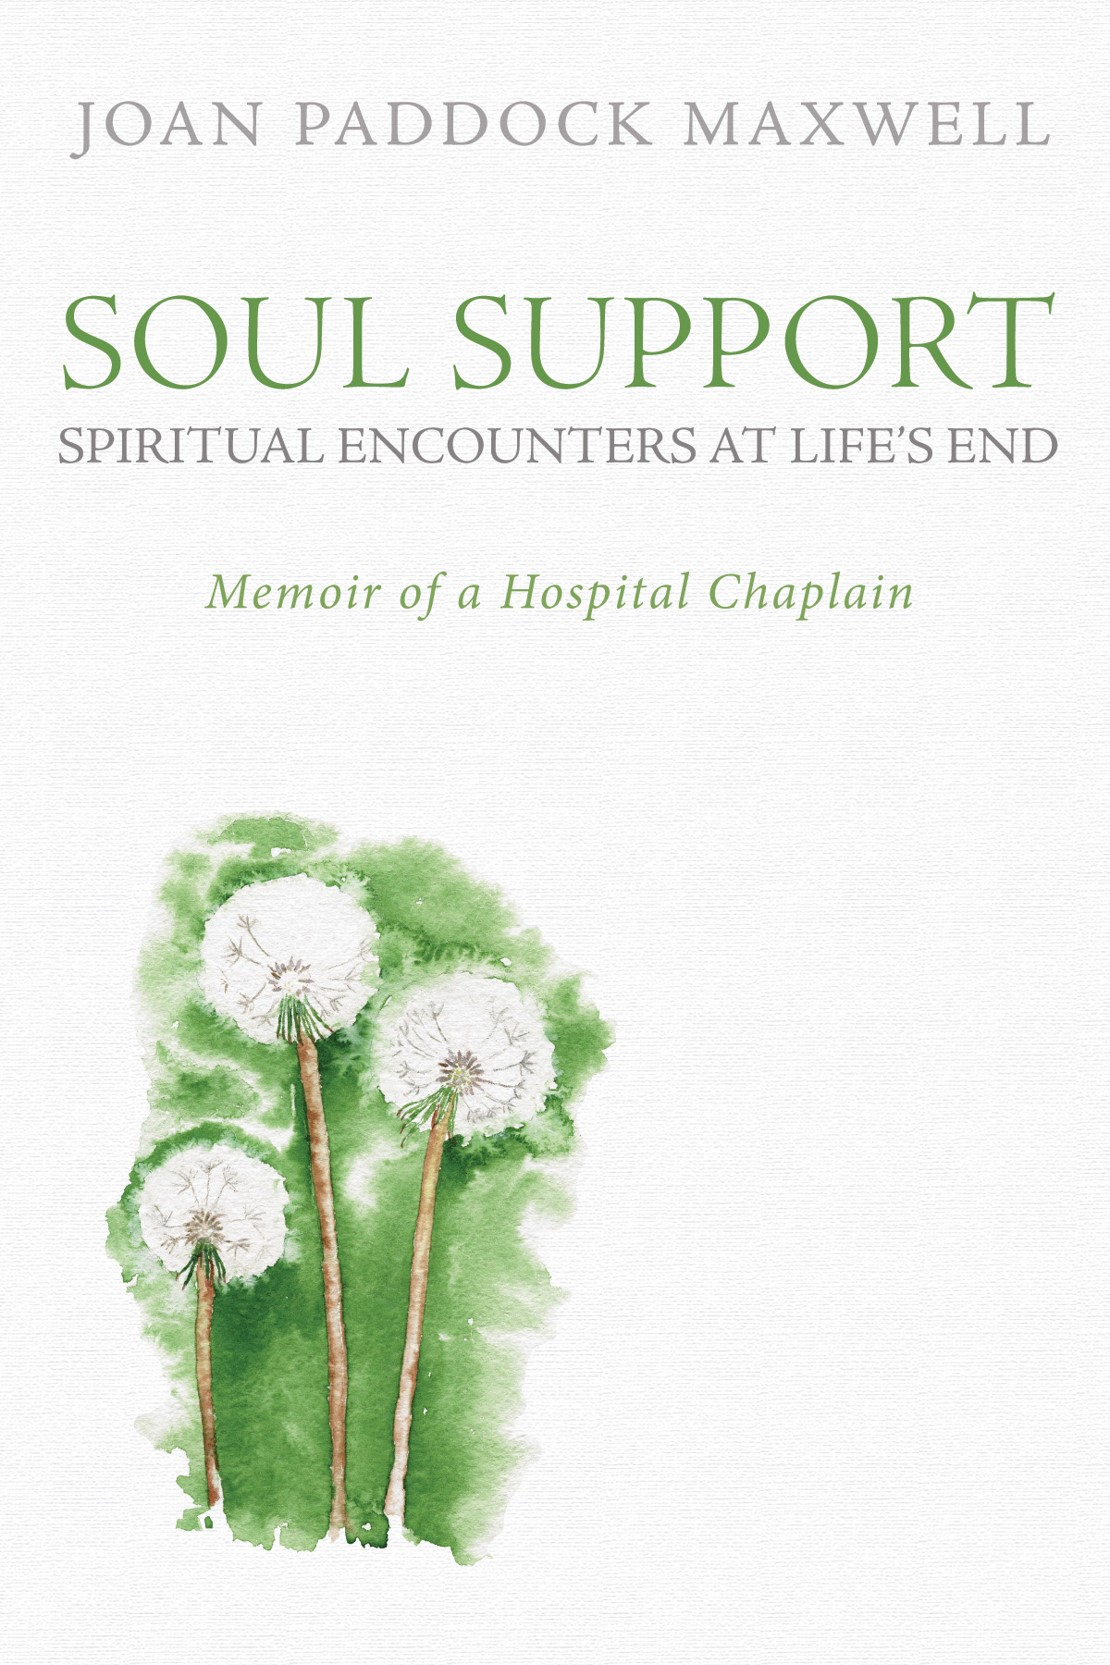 Memoir of a Hospital Chaplain - A young dancer's last hope--a bone marrow transplant--has failed. A homeless man, in the final stages of AIDS, refuses to speak. A newly retired woman has just received a terminal diagnosis and is wailing in despair. What can we learn about death, dying, and the human spirit as we journey with a hospital chaplain into sickrooms like these?Joan's memoir offers intimate observations of people coming to terms with their final days. She offers a unique perspective as a retired hospital chaplain, of both the practical and emotional realities patients, their families and friends, and hospital staff deal with related to death and dying.